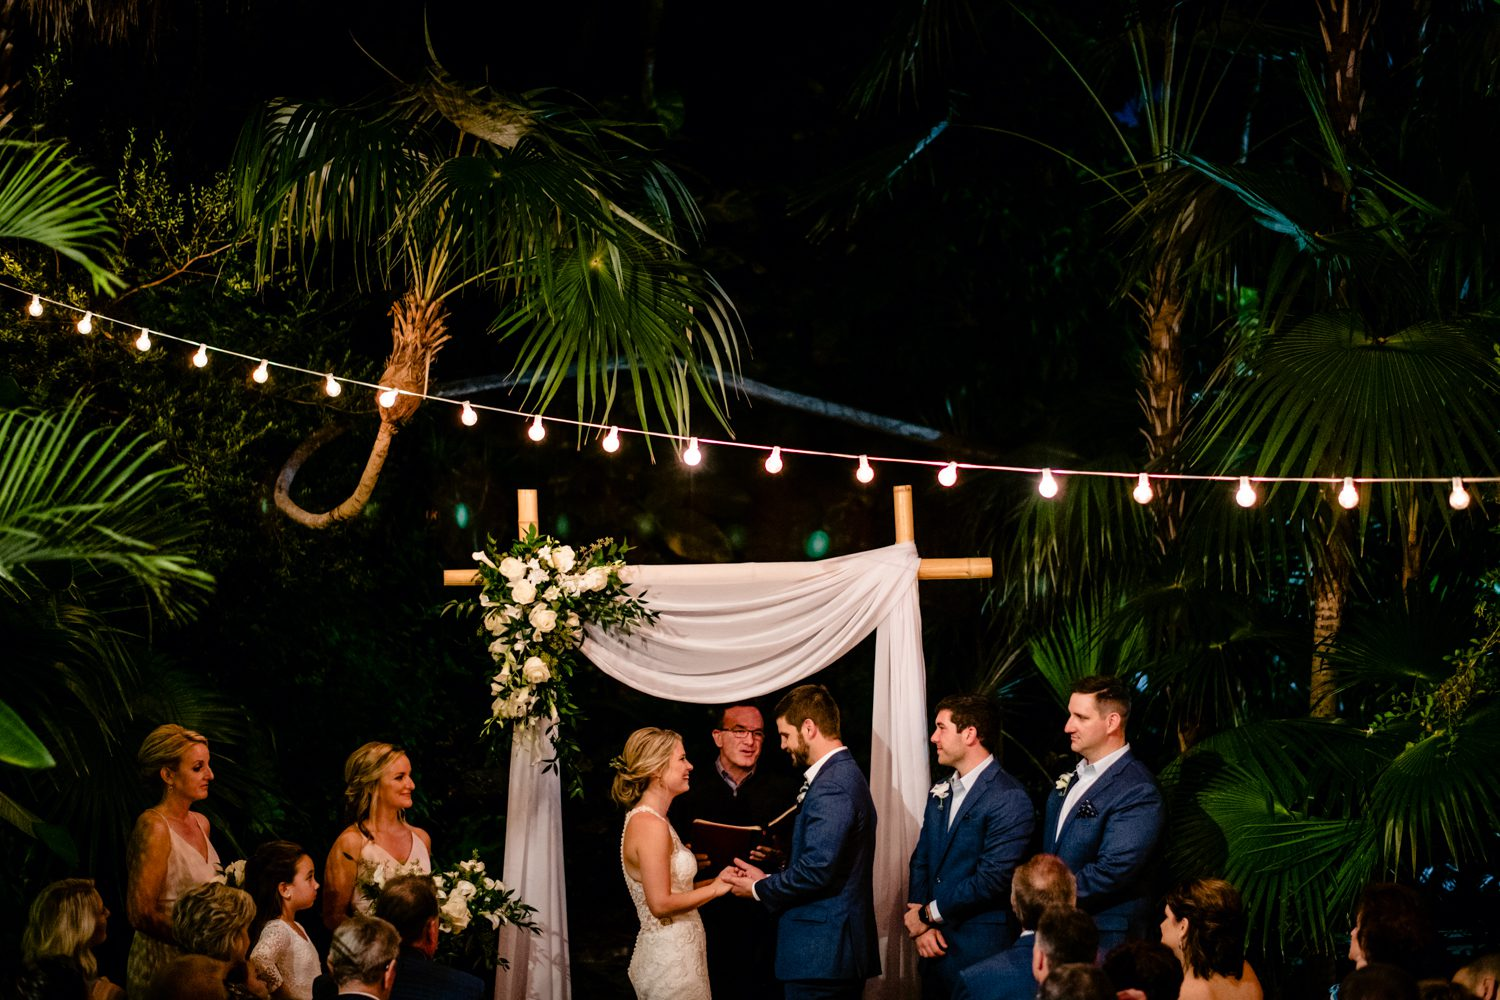 Bride and groom exchanging vows at hemingway house